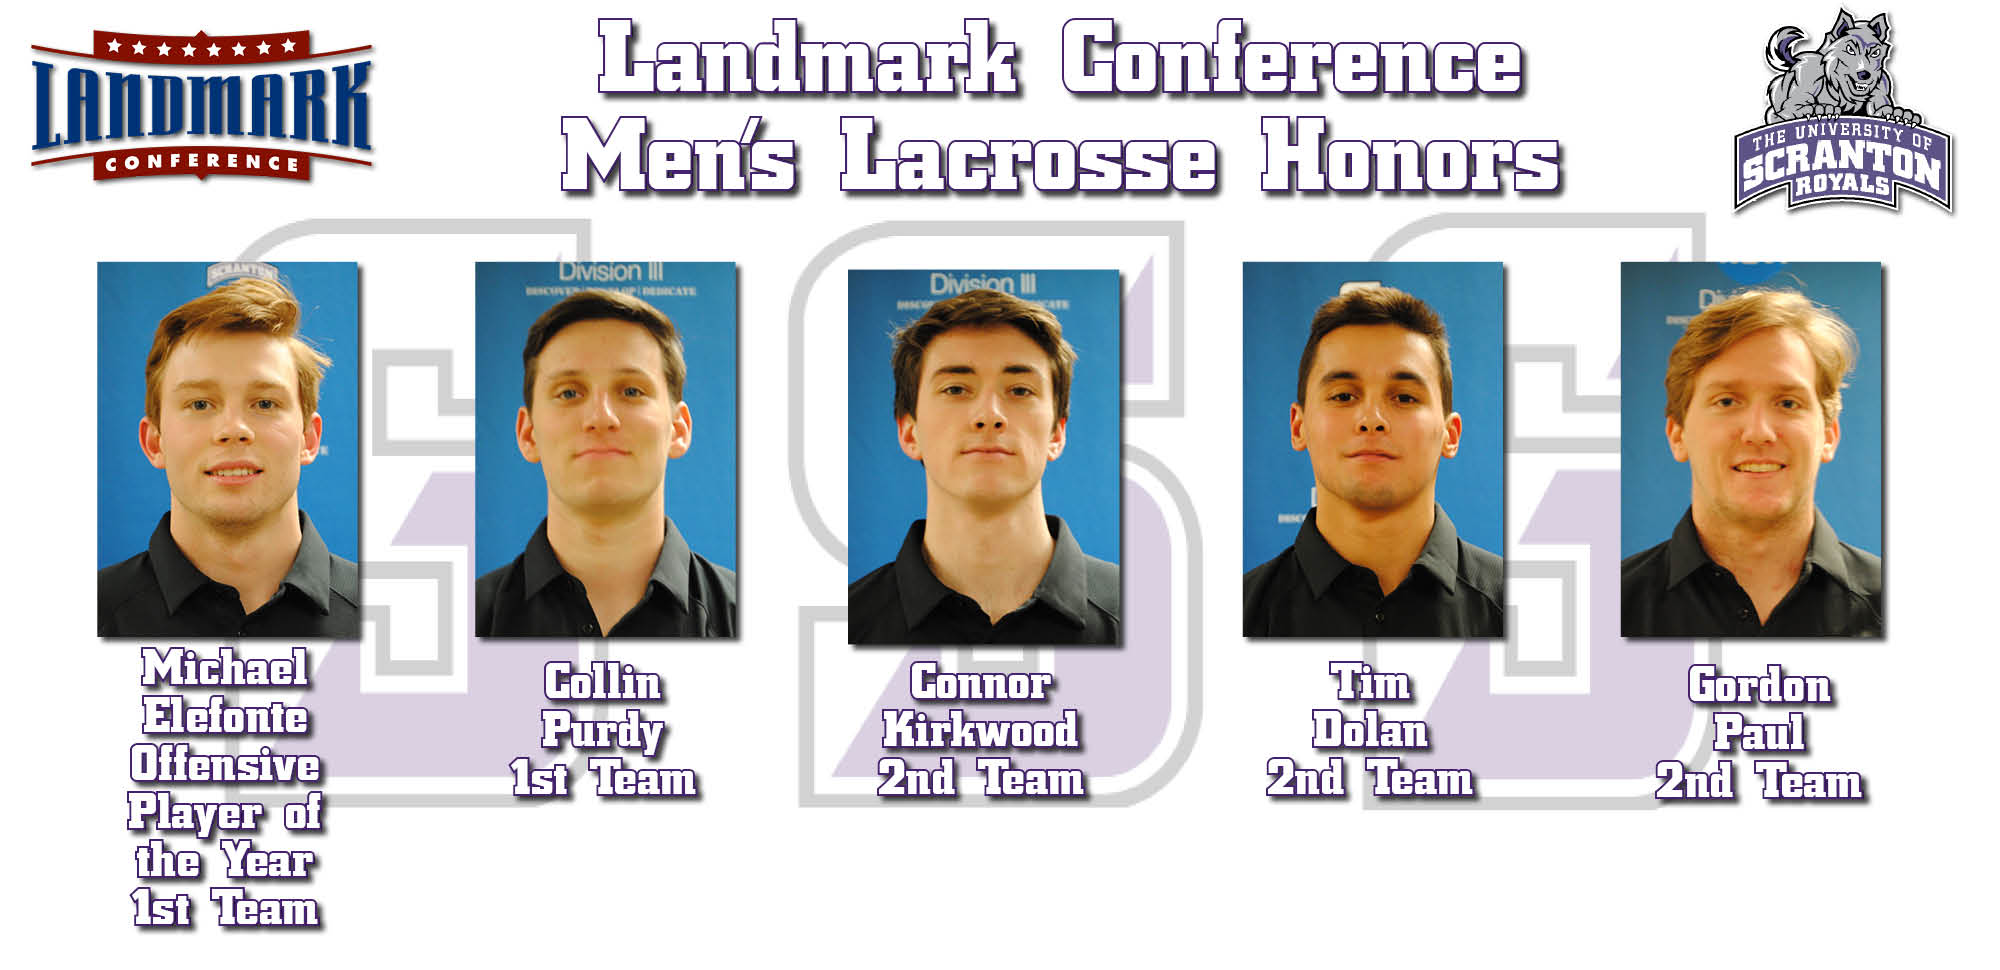 Men's Lacrosse Claims Six Year-End Landmark Conference Awards Highlighted by Offensive Player of the Year Honors for Elefonte